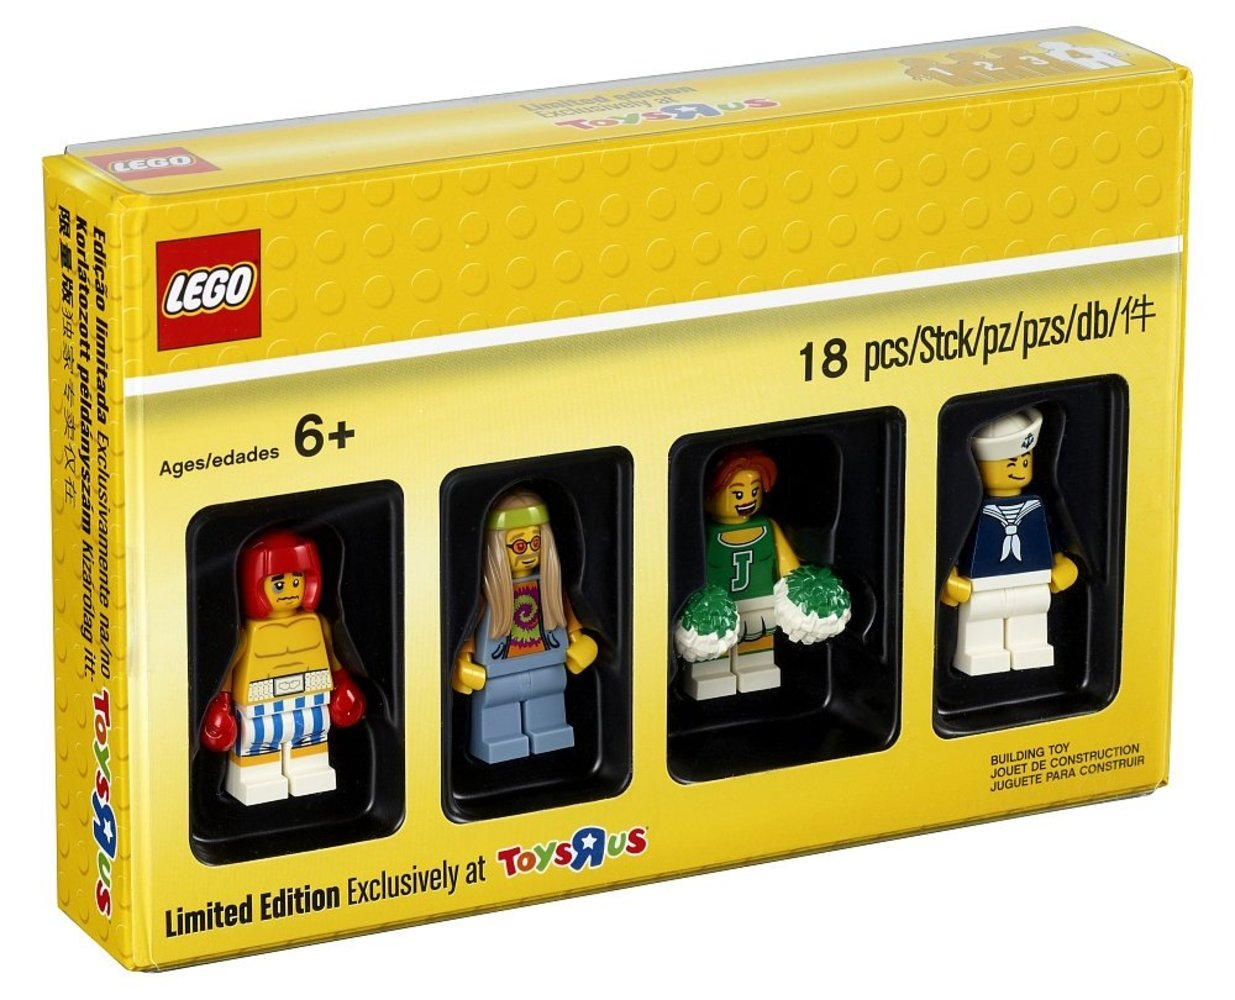 Collectible Minifigures - Classic